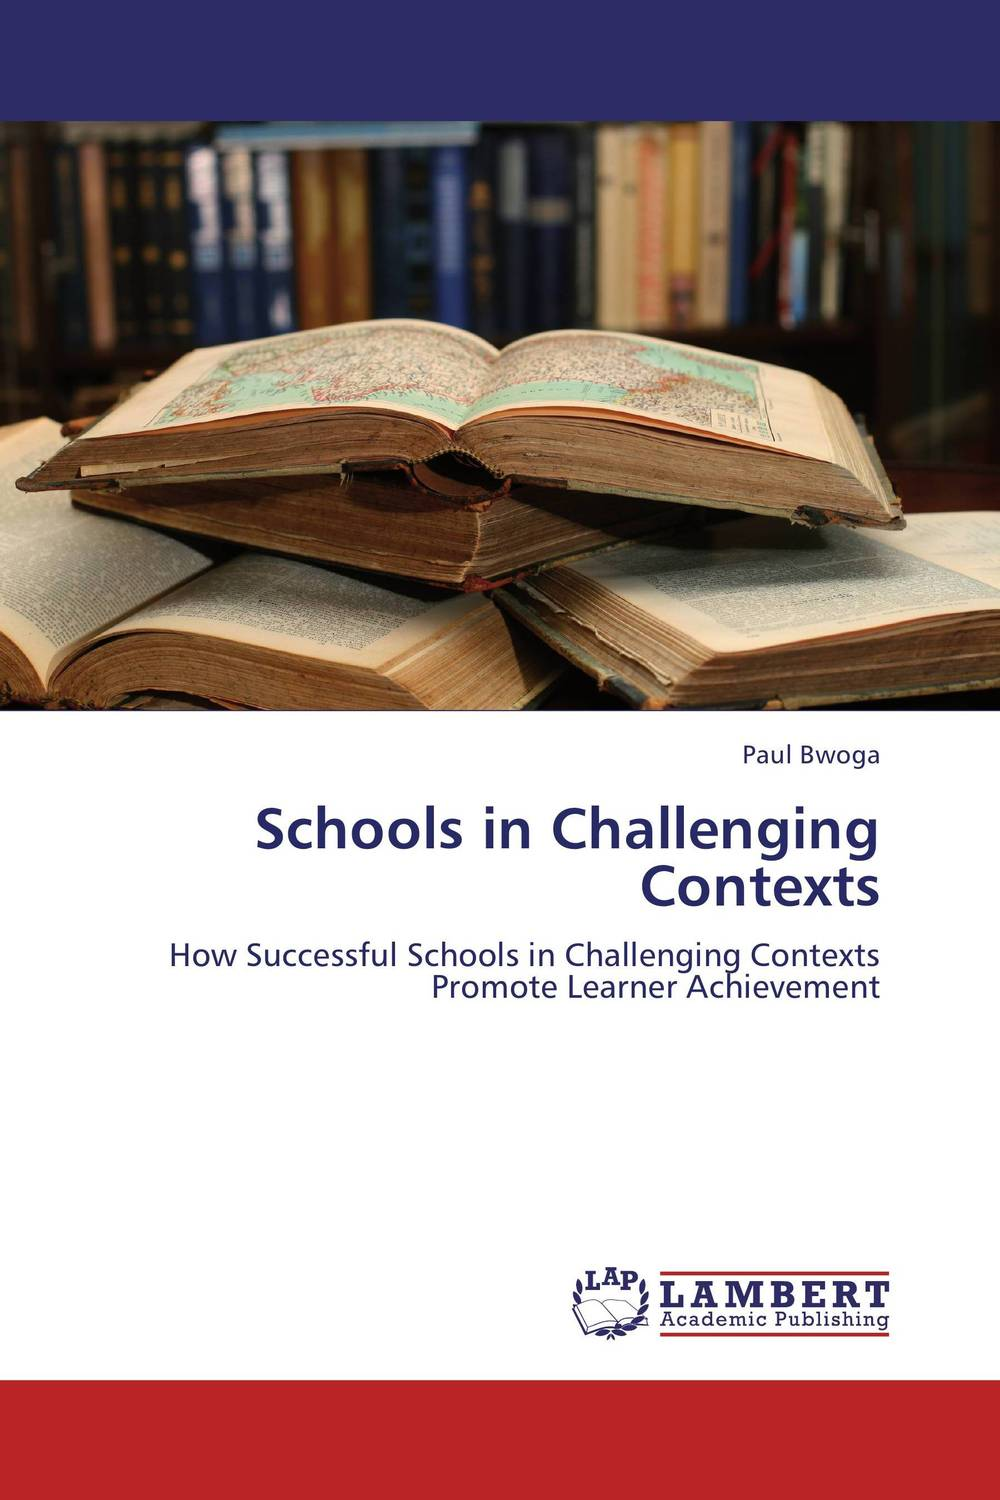 Schools in Challenging Contexts